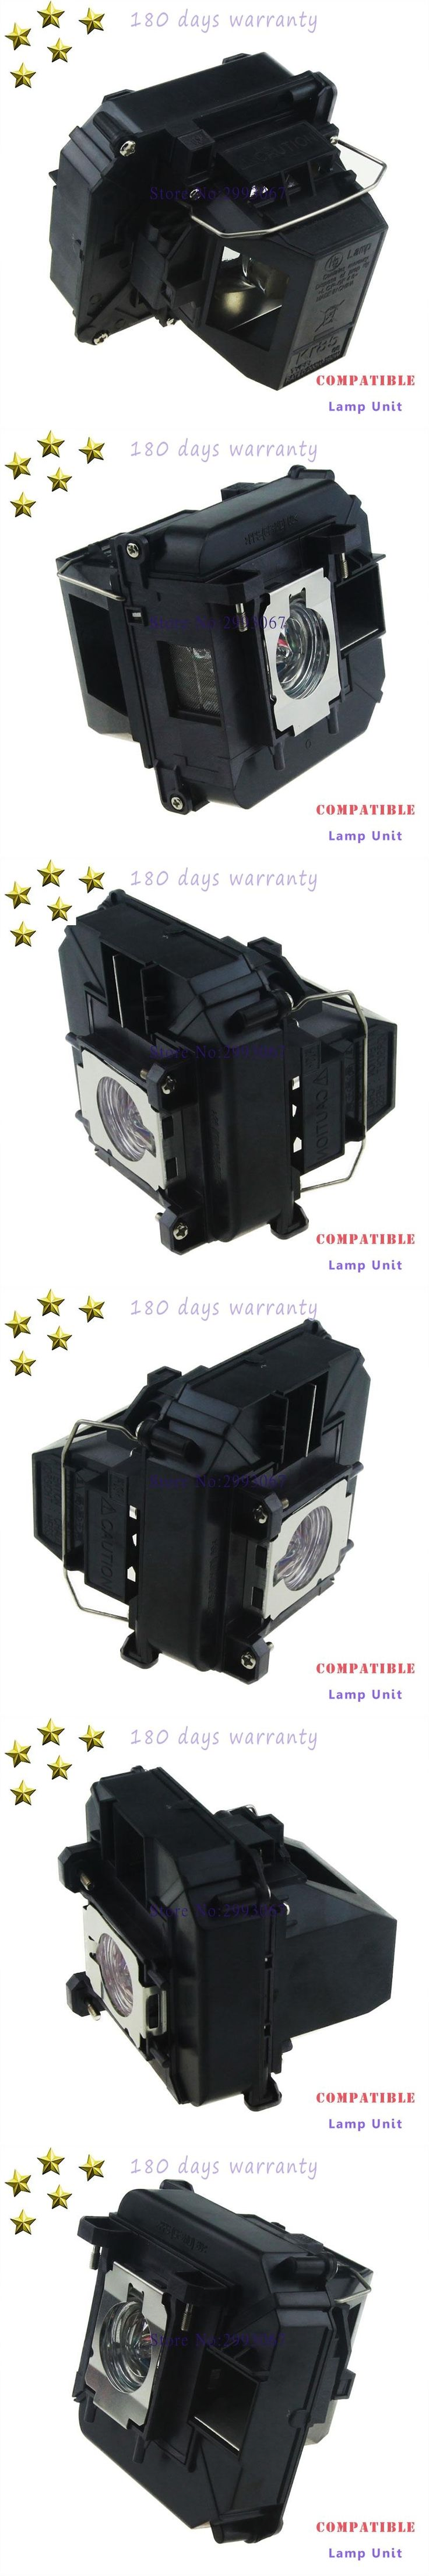 Hot Sale New ELPLP68 V13H010L68 Projector Lamp Module For Epson EH-TW5900/EH-TW6000W / EH-TW6100 / PowerLite HC 3010 / HC 3010e